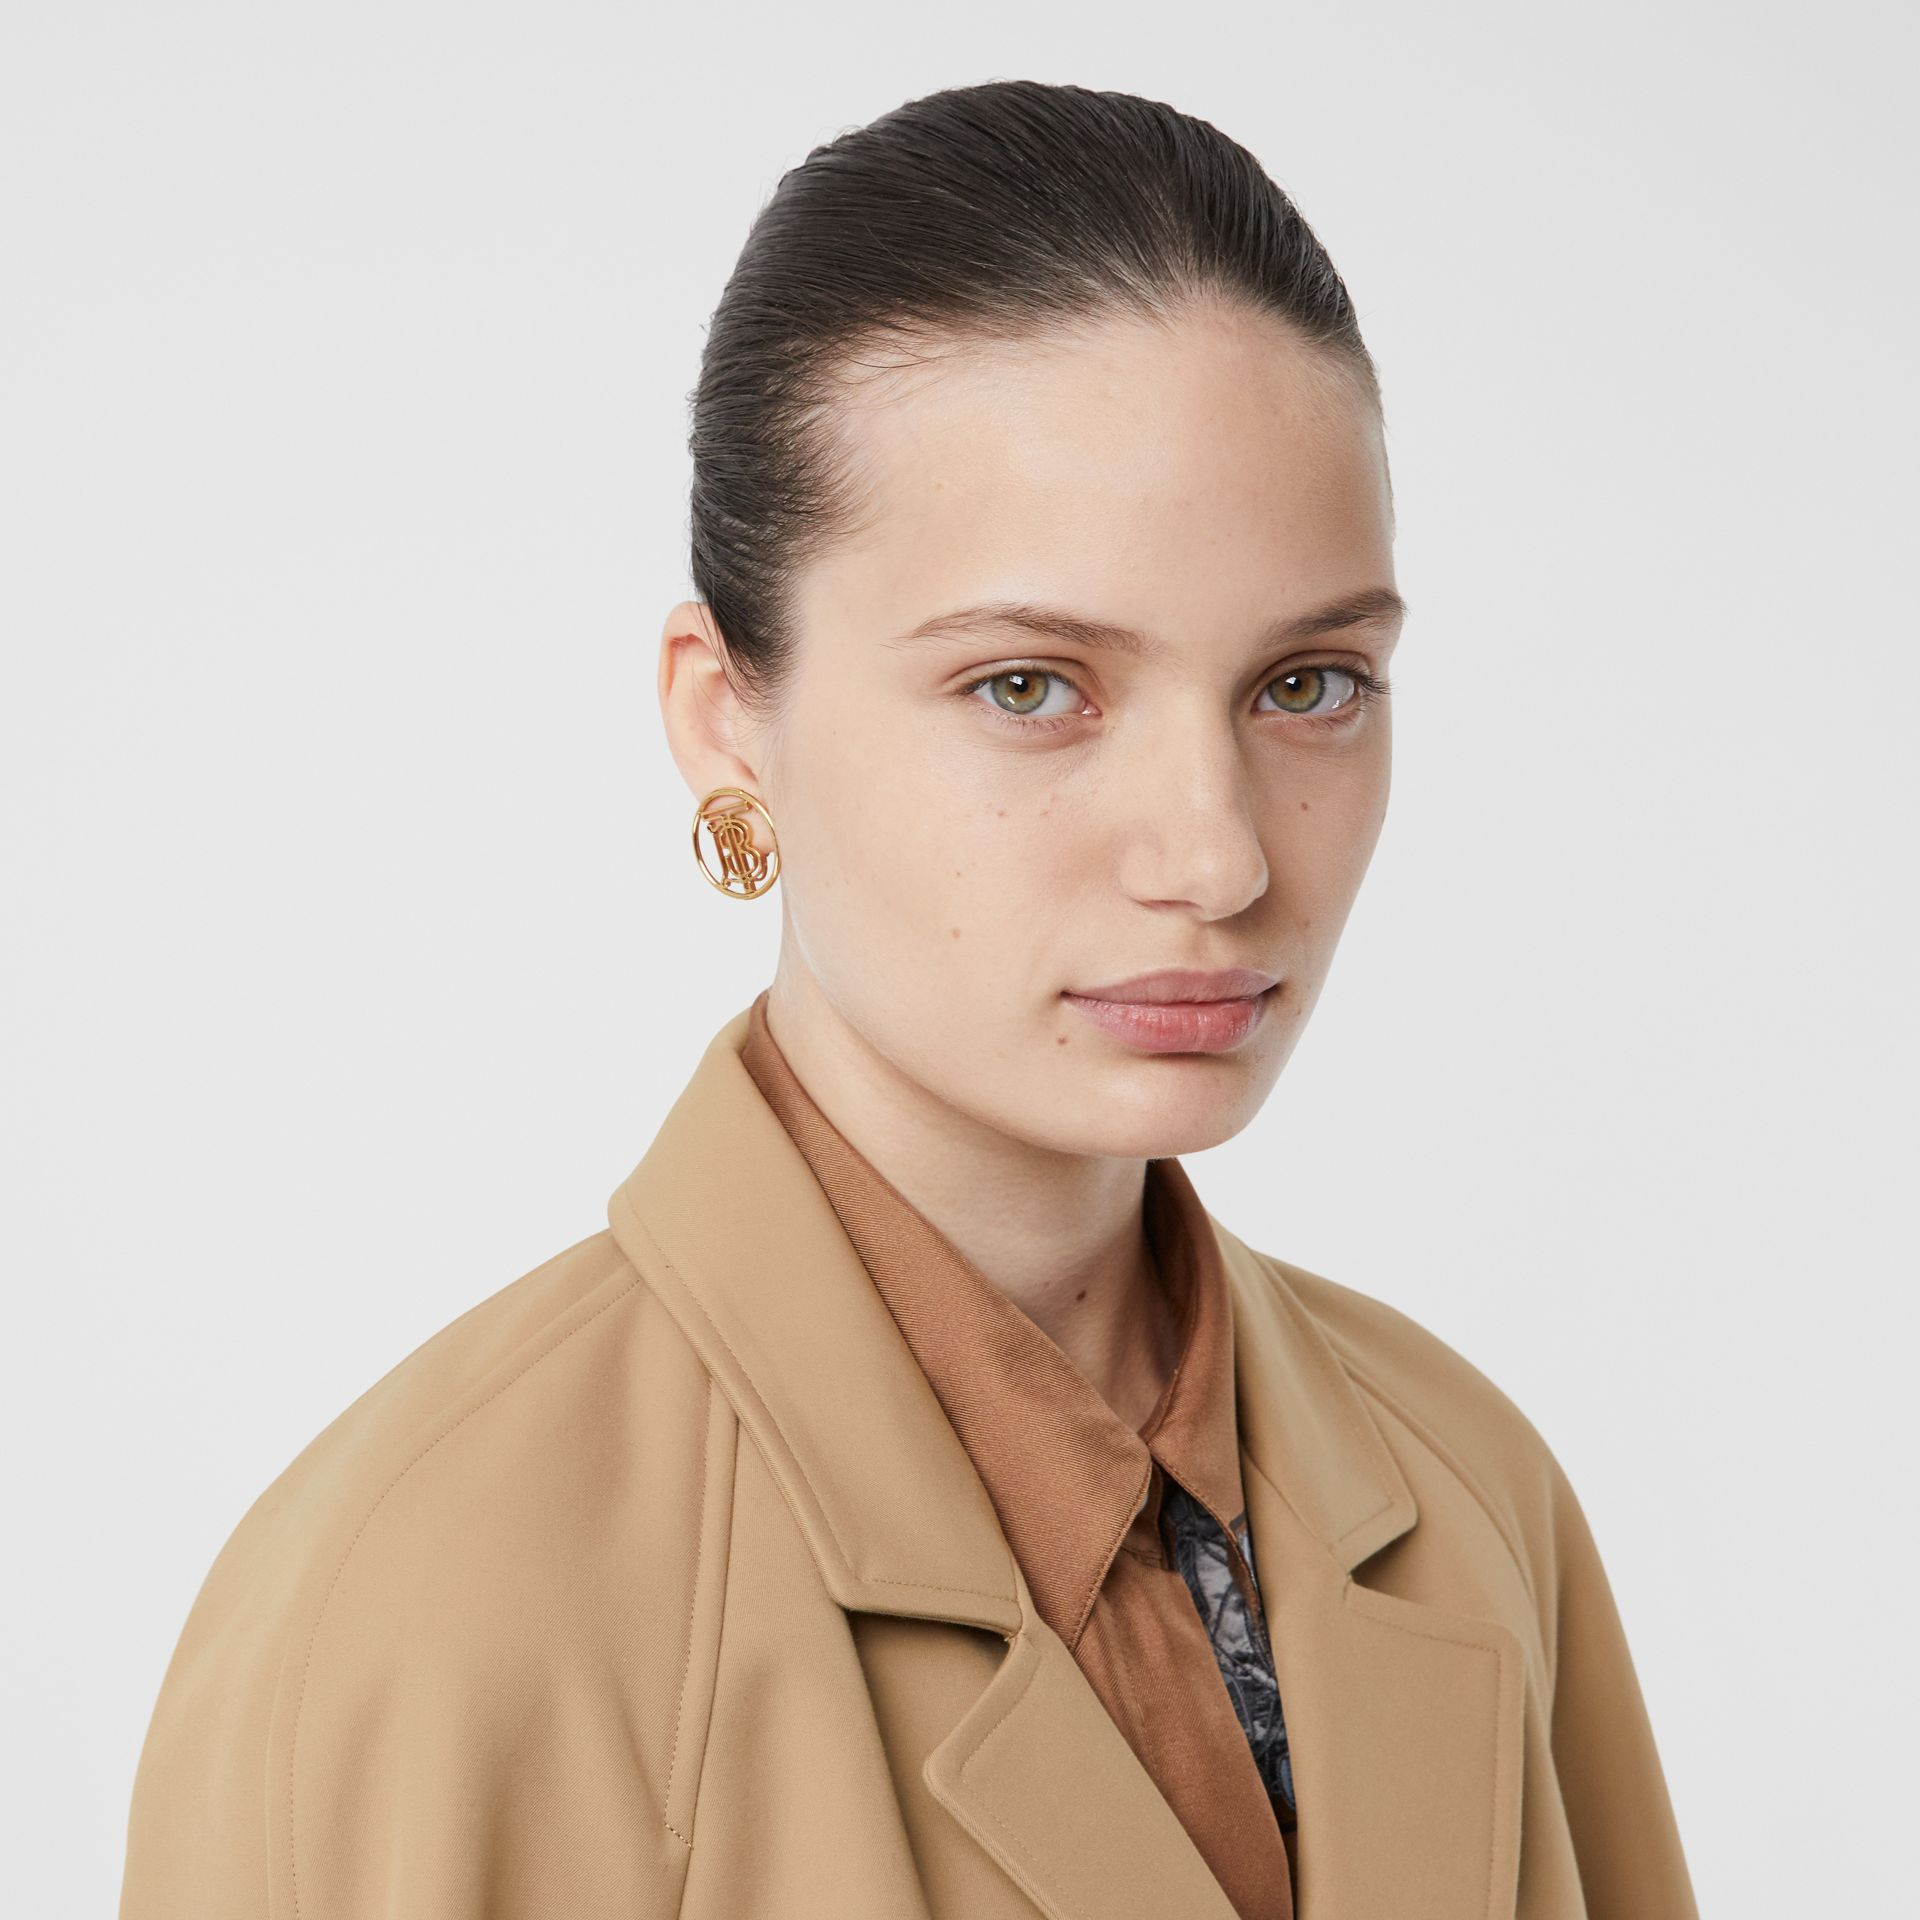 Leather Trim Bonded Cotton Lab Coat in Biscuit - Women | Burberry United States - gallery image 1